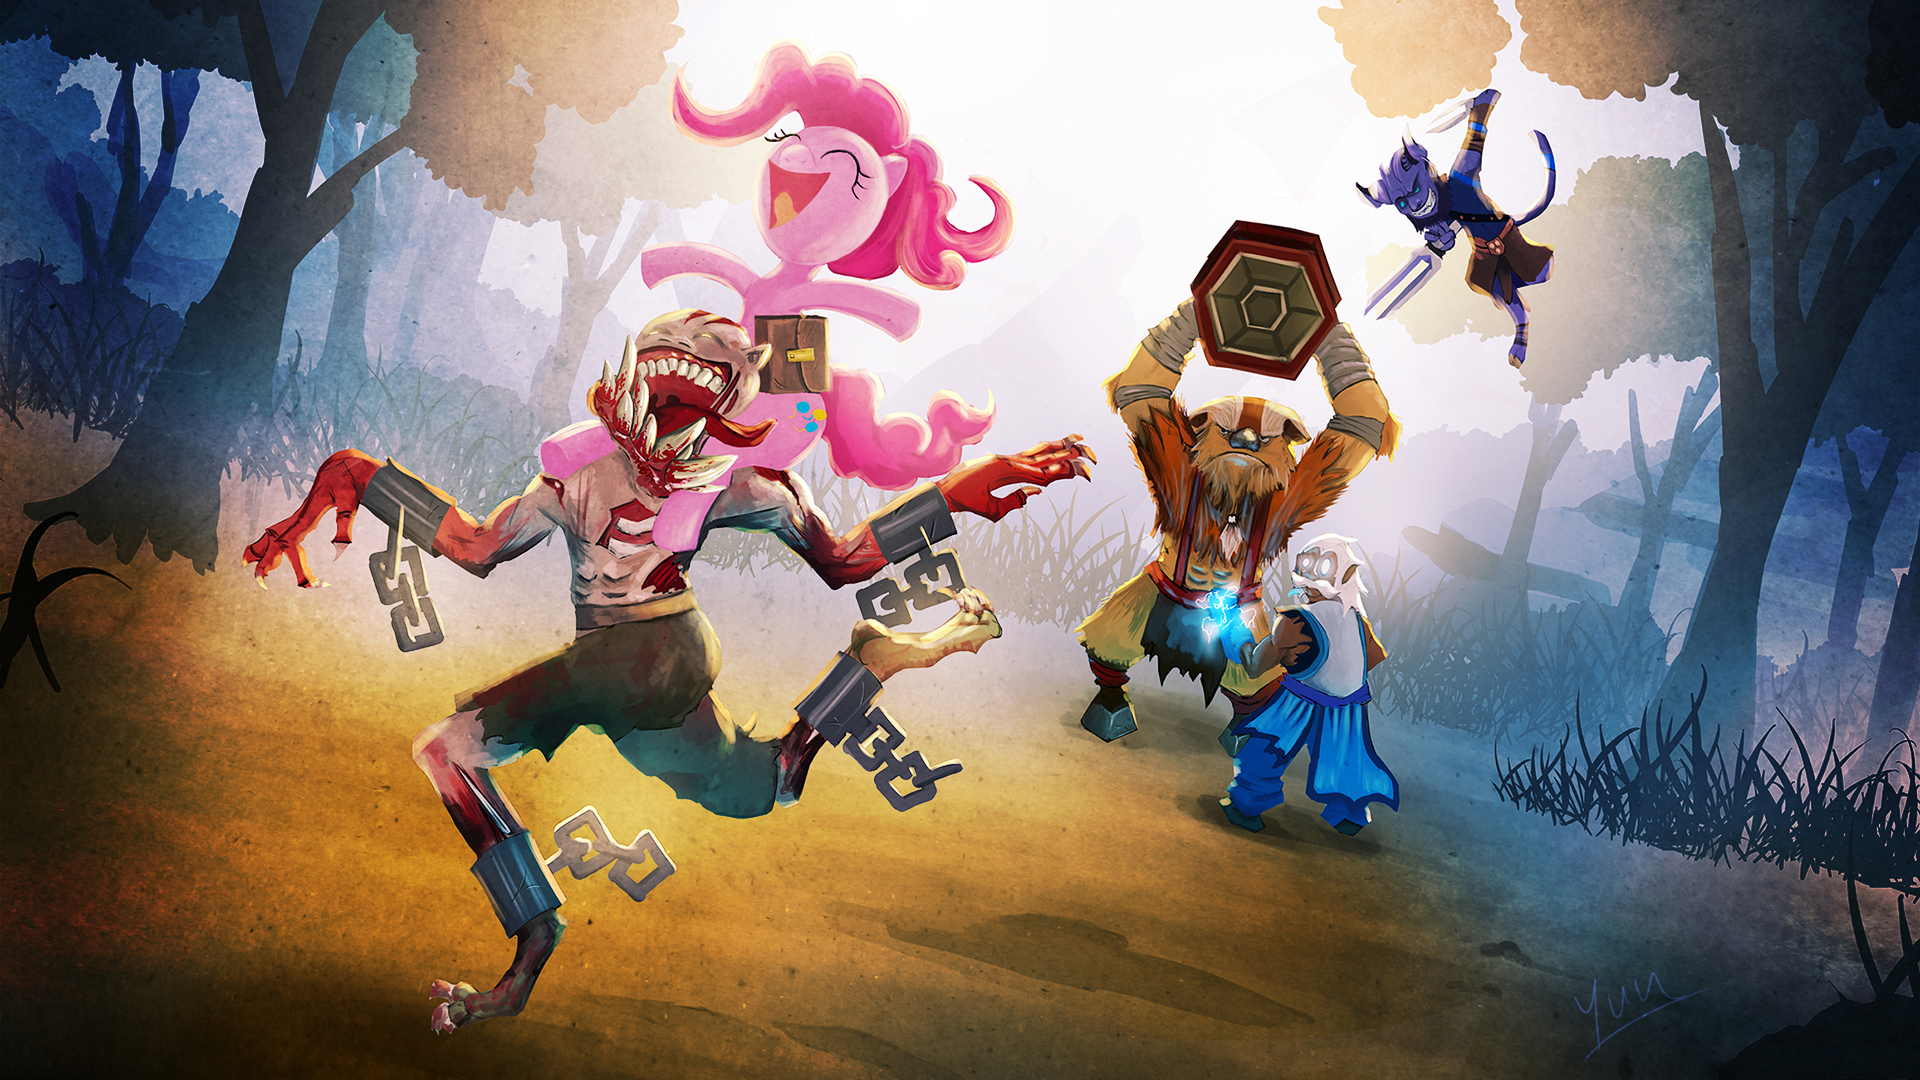 Picture Dota 2 My Little Pony Riki Lifestealer Earthshaker 1920x1080